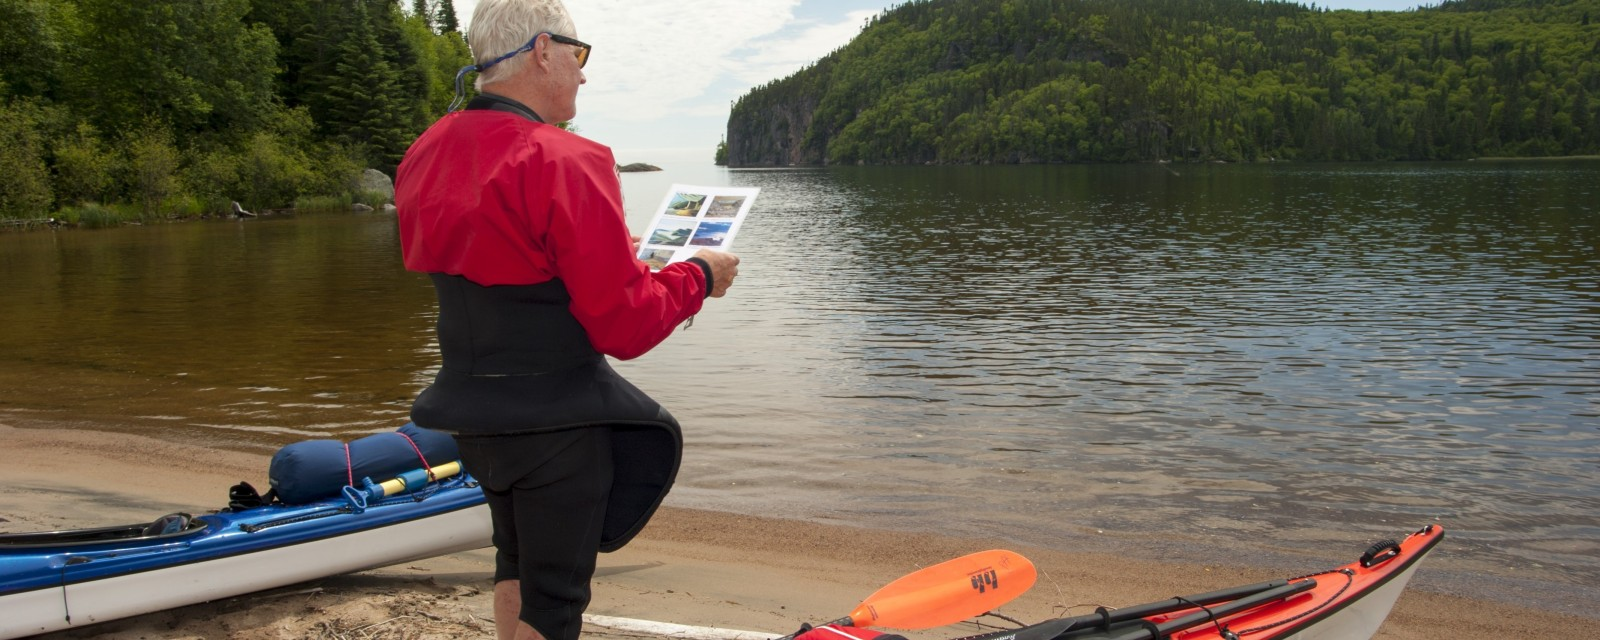 Guided Sea Kayak Trip - Rossport to Pukaskwa: Group of Seven Landscapes